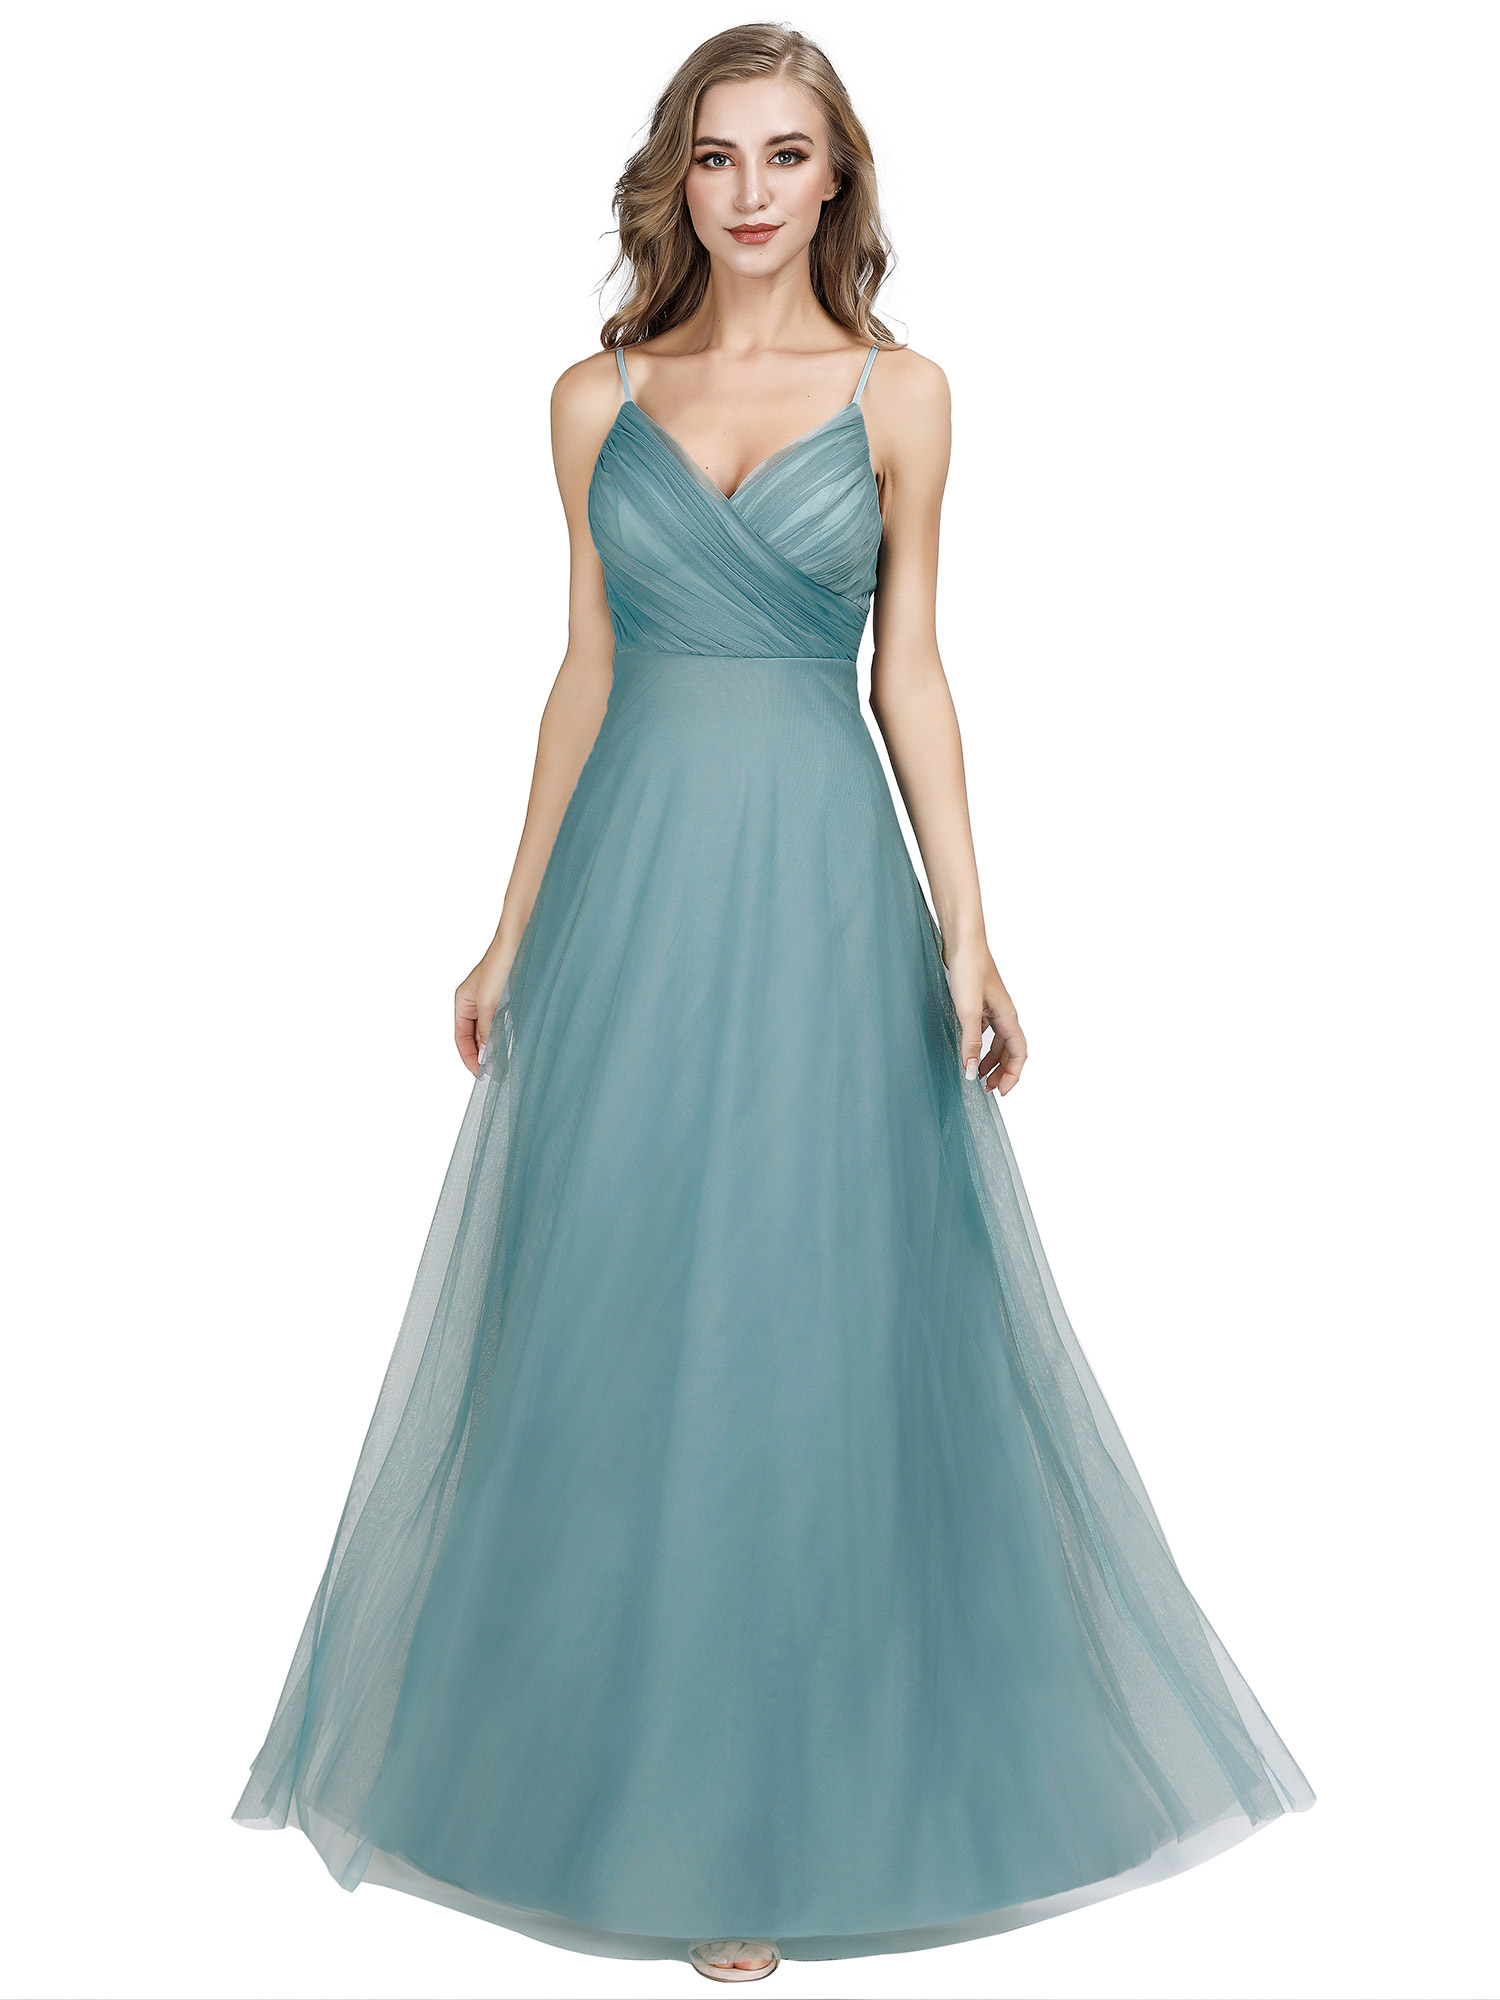 Ever-pretty-US-Formal-Evening-Prom-Gown-A-line-Cocktail-Homecoming-Party-Dresses thumbnail 9